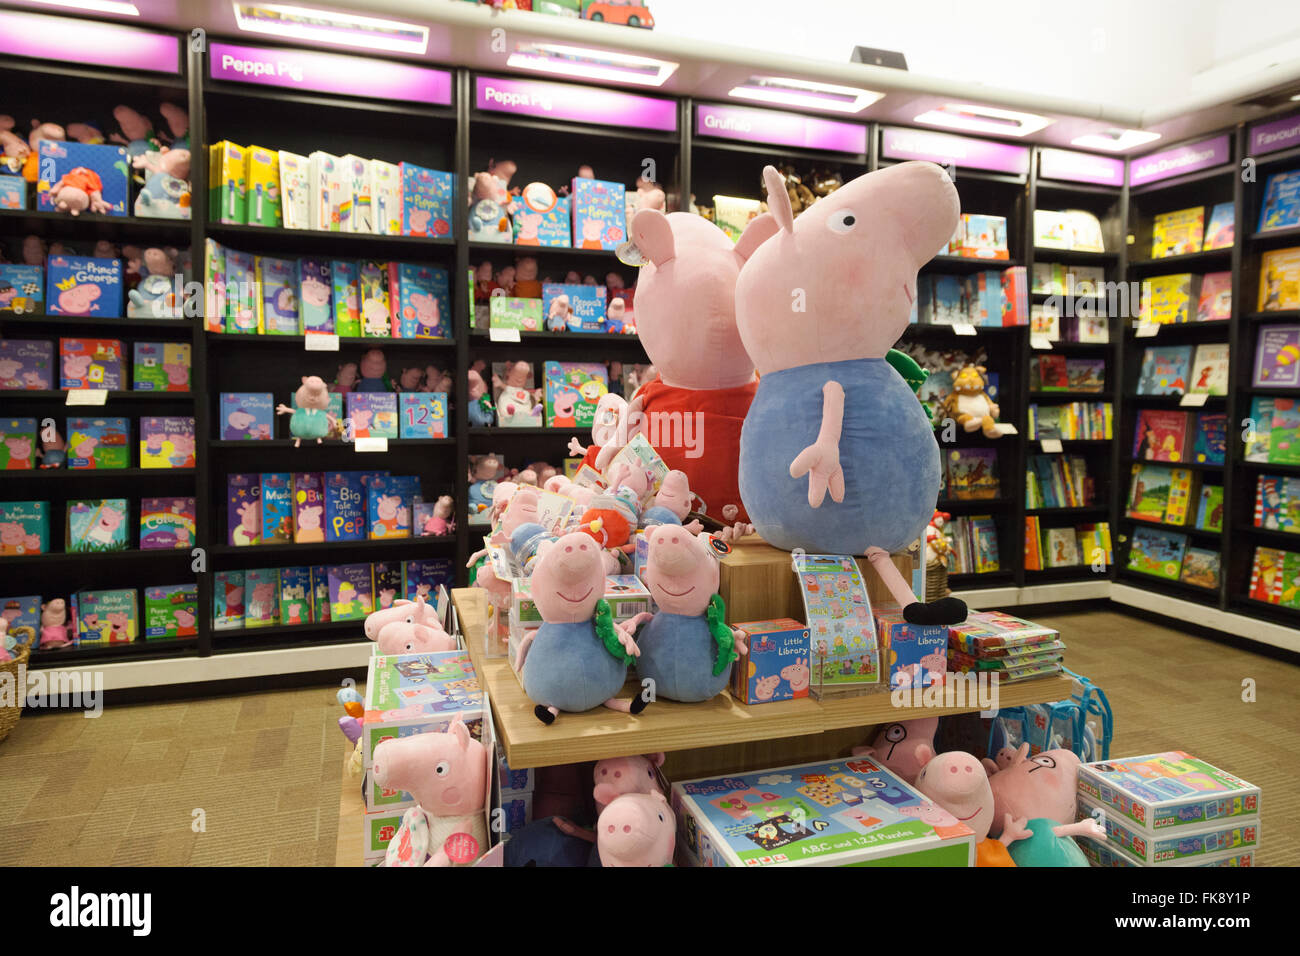 peppa pig books display waterstones bookstore piccadilly. Black Bedroom Furniture Sets. Home Design Ideas